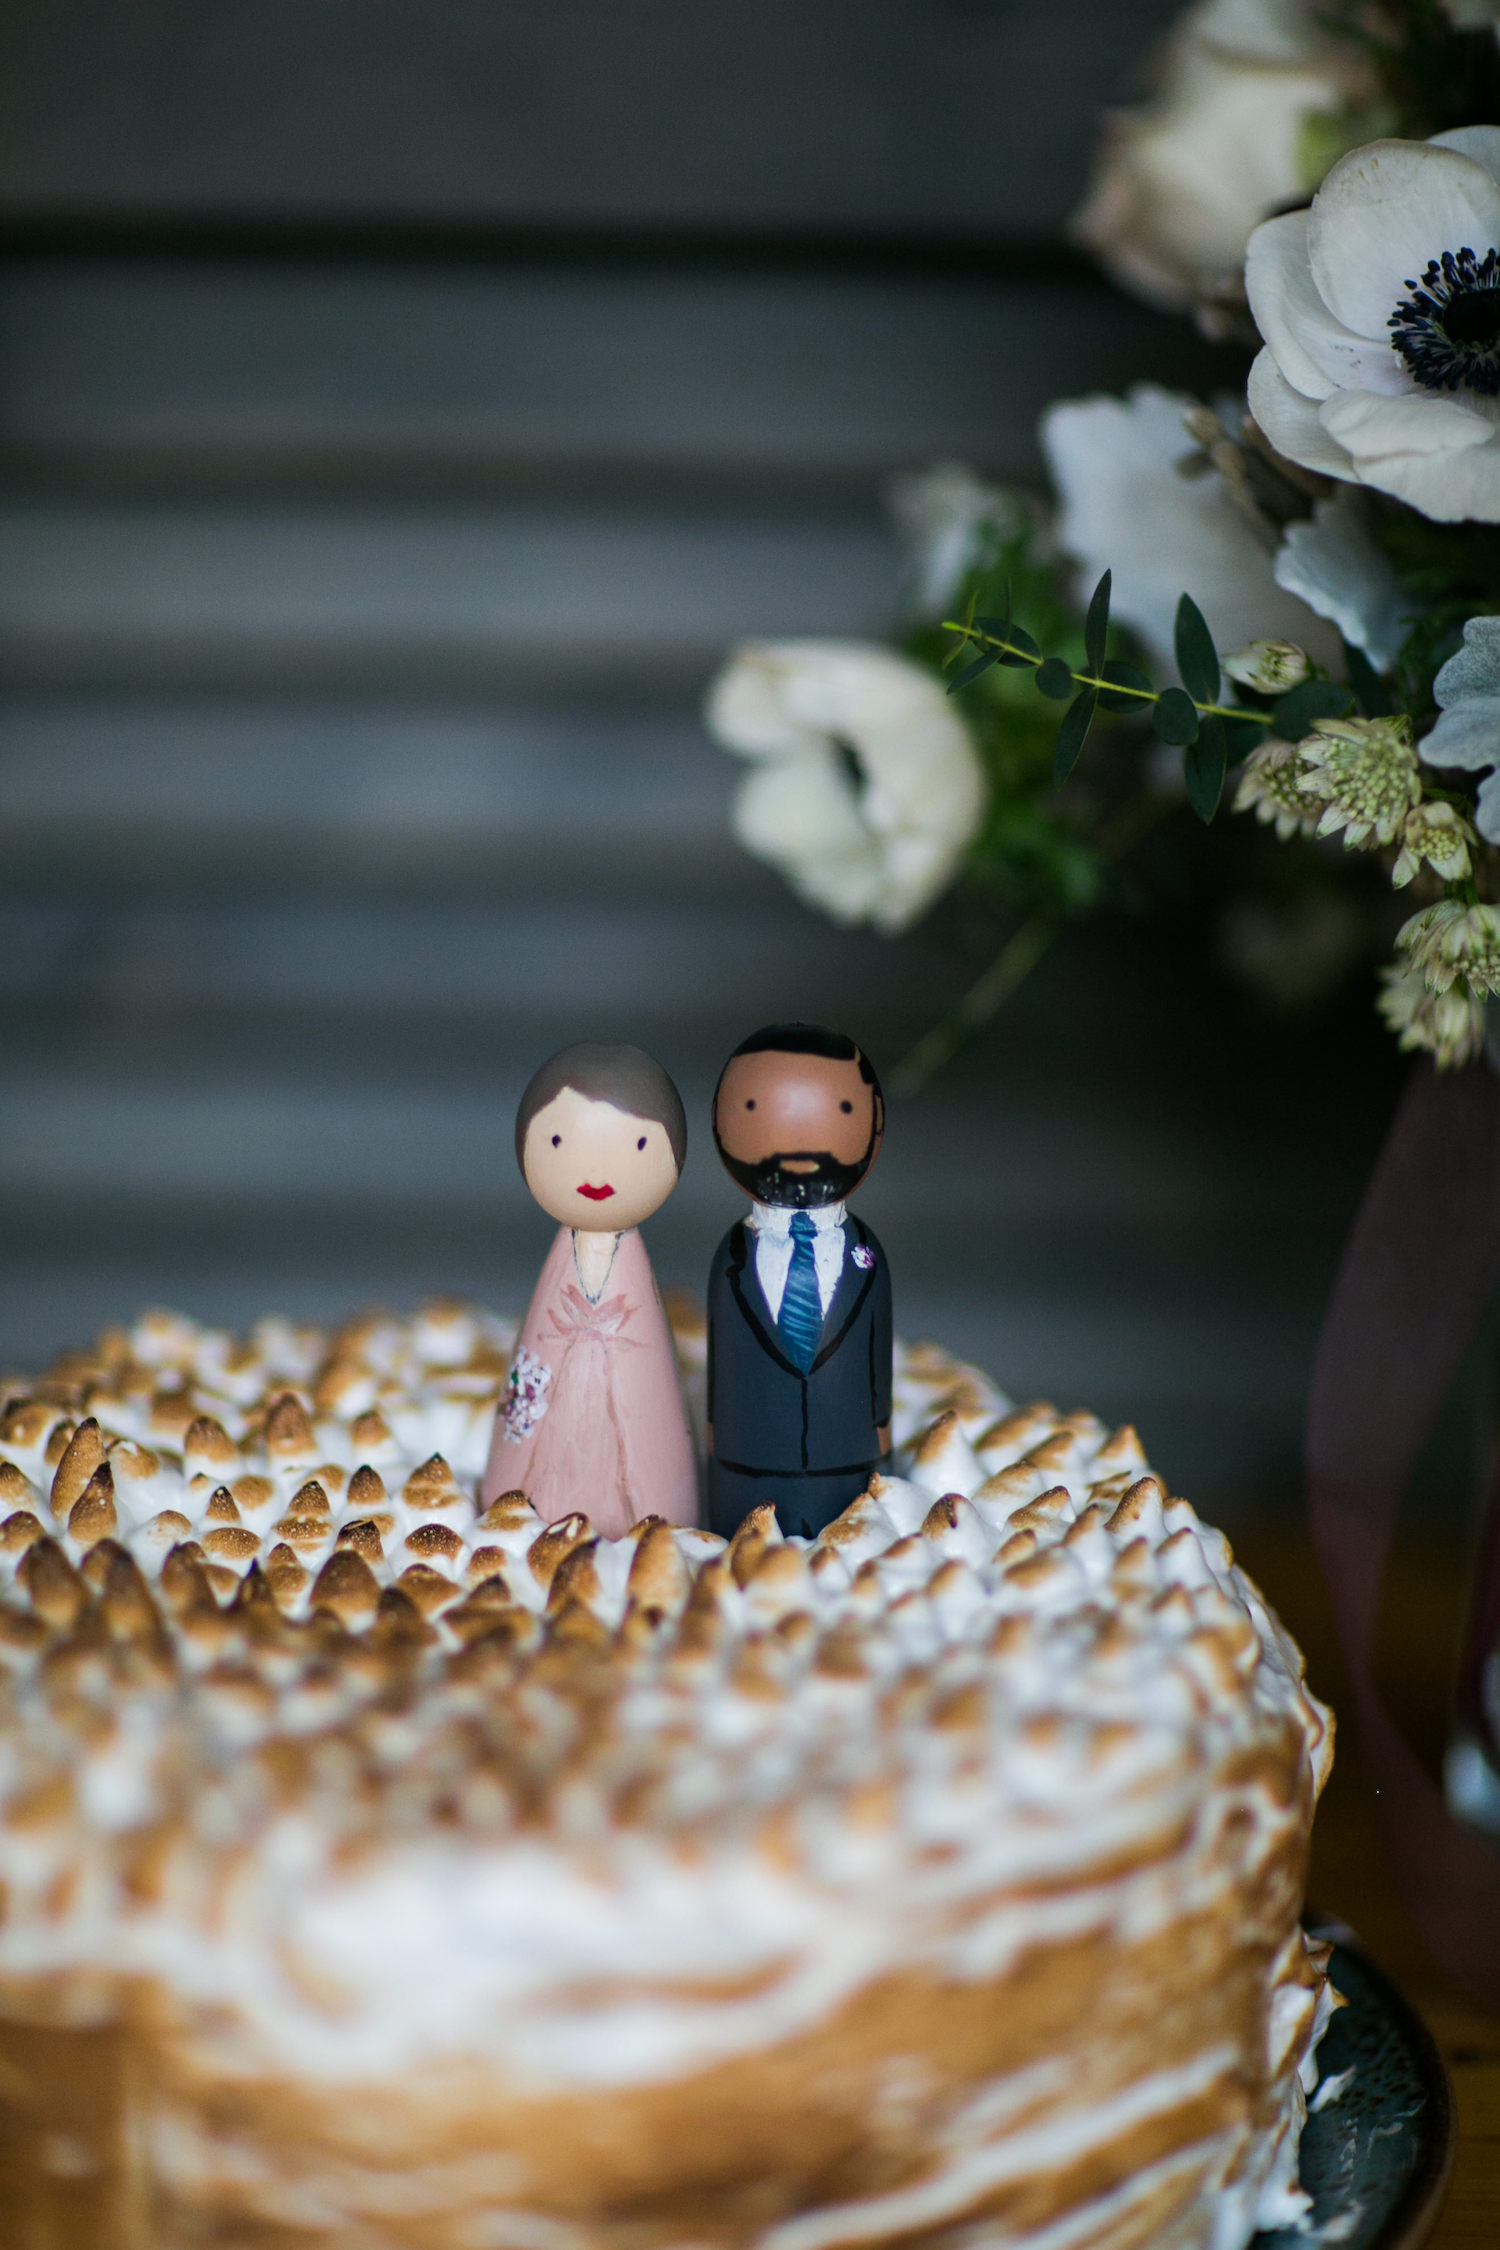 Wooden Peg People Cake Topper